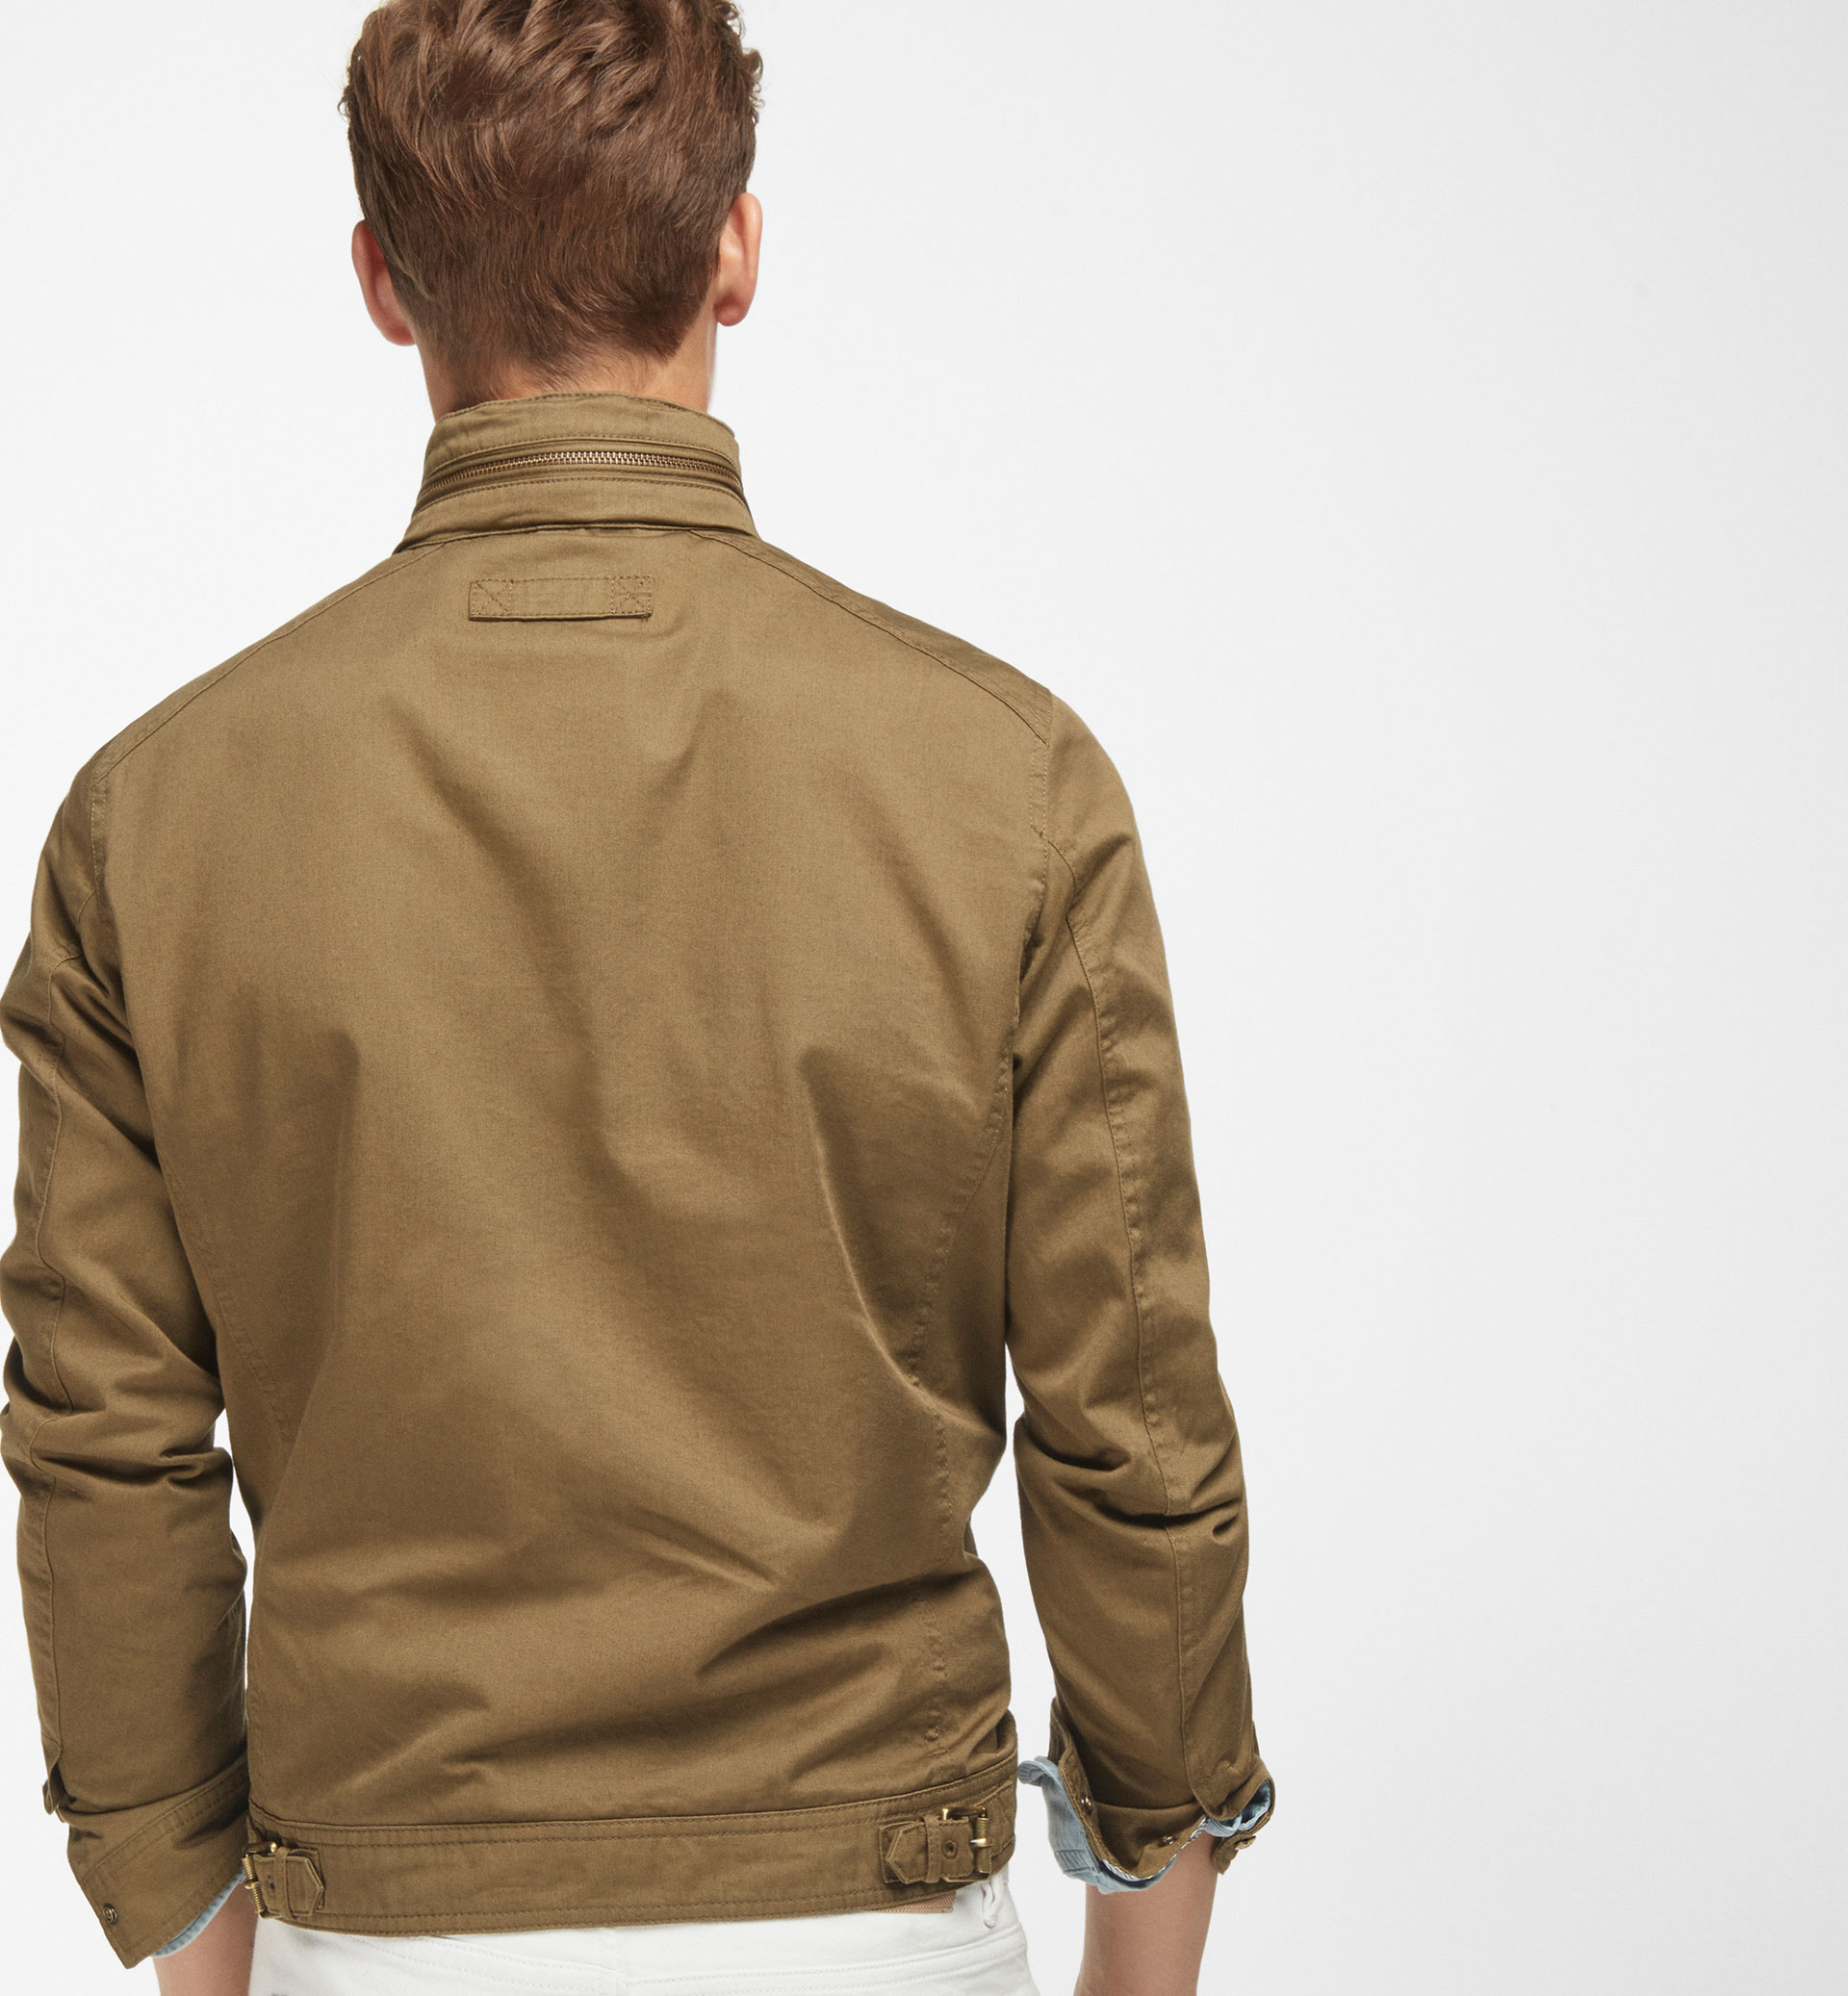 KHAKI COTTON JACKET